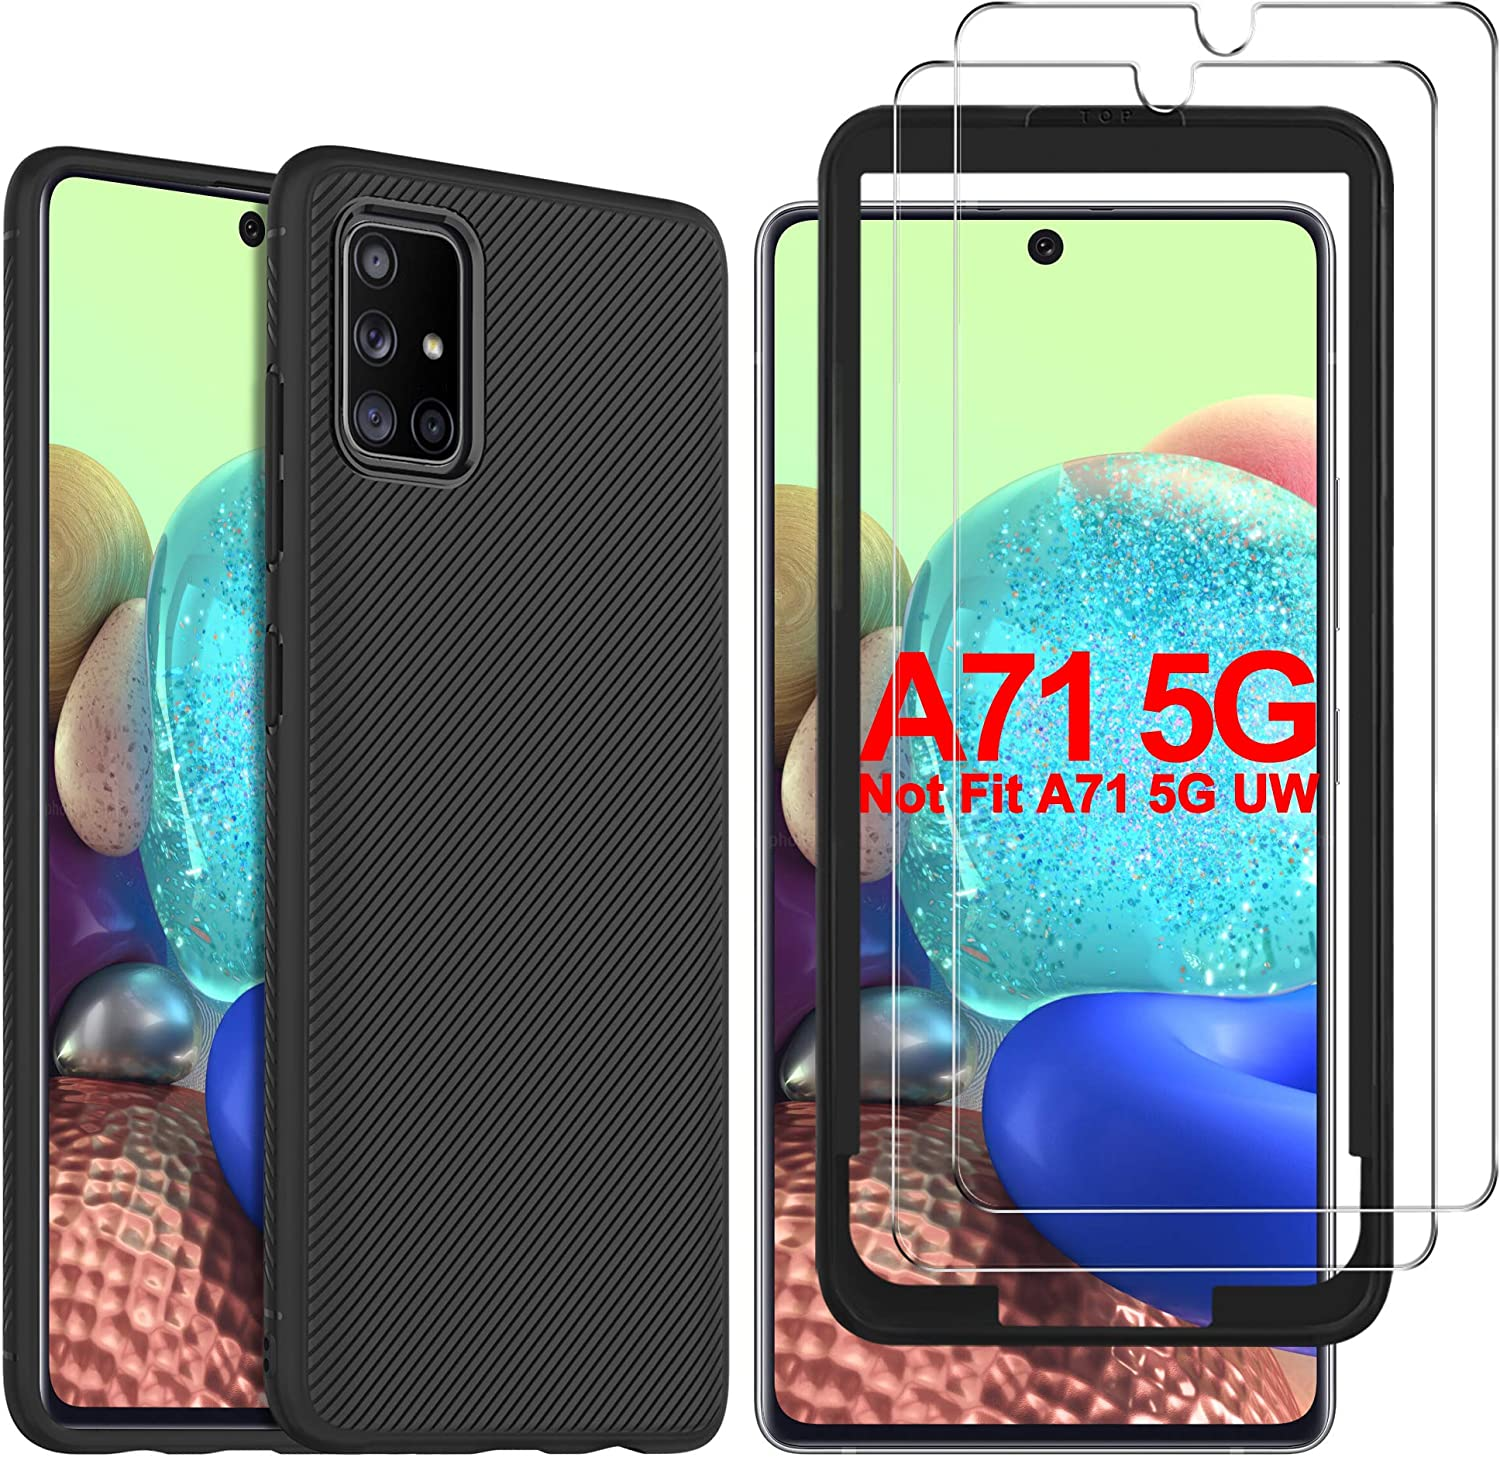 Amazon Com Gesma For Samsung Galaxy A71 5g Case With Screen Protector 1 Case 2 Screen Protector 1 Tray Scratch Resistant Case Tempered Glass Screen Protector For Samsung Galaxy A71 5g Sm A716 Black Electronics